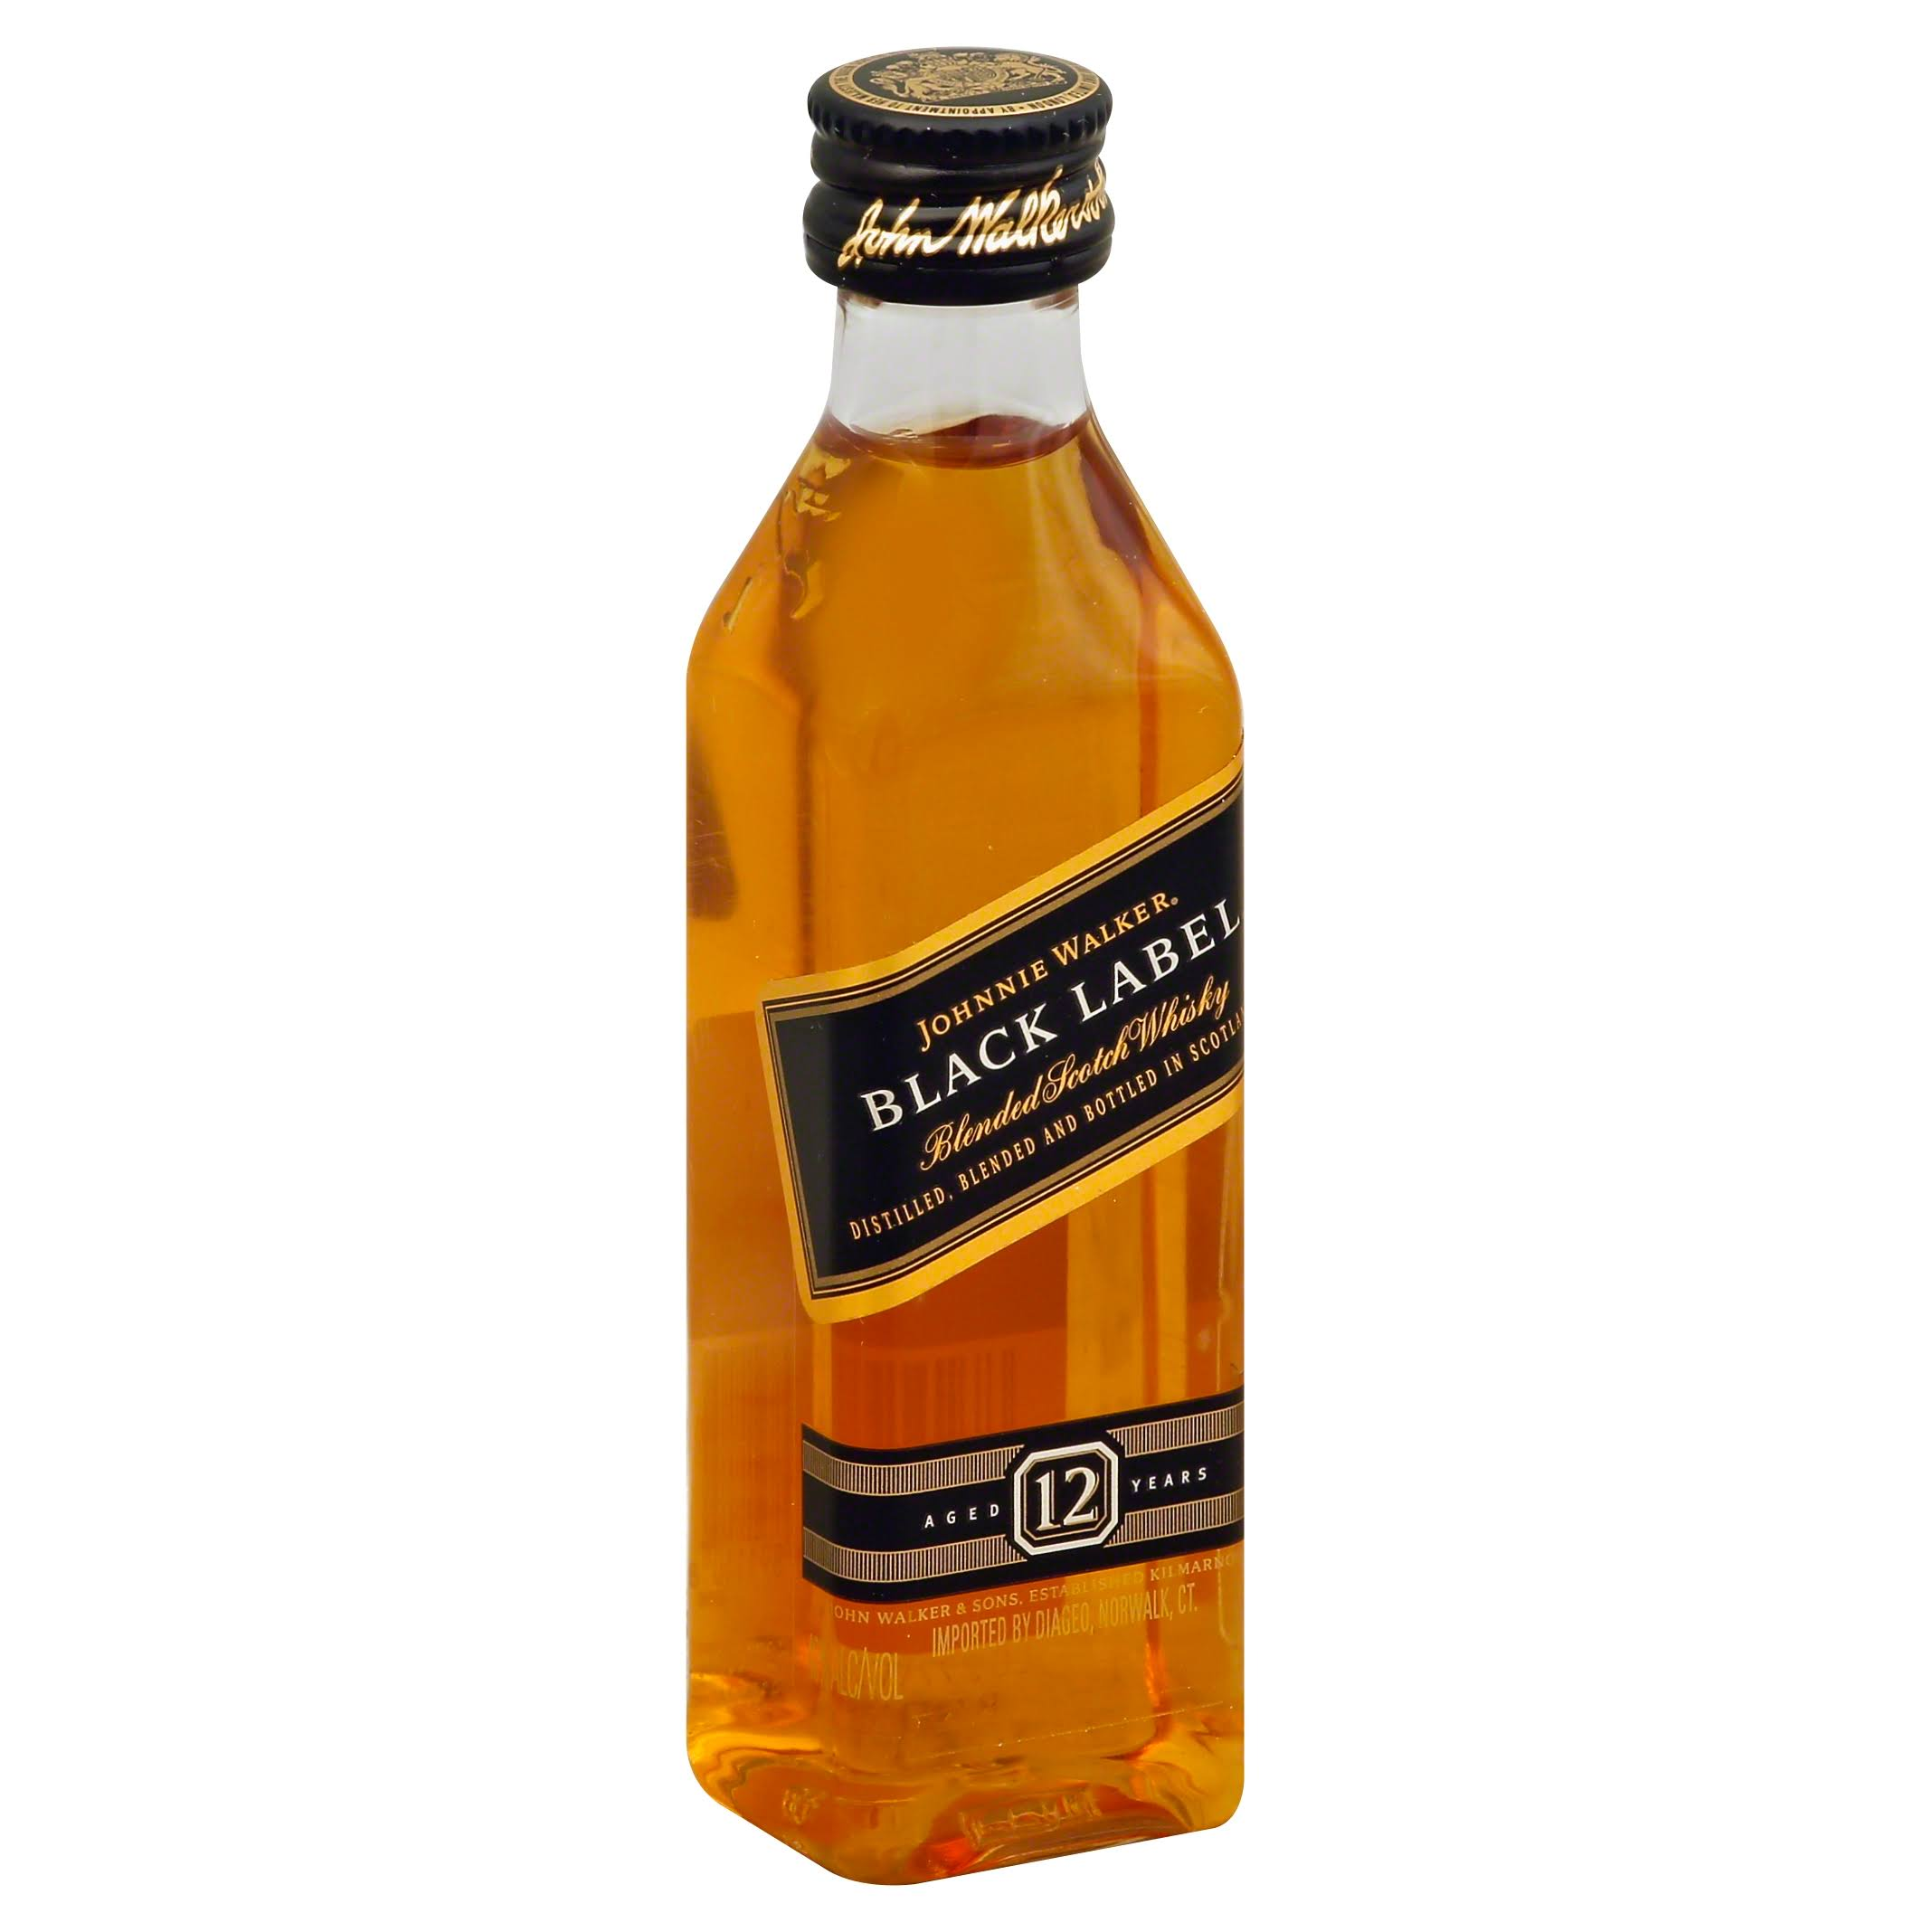 Johnnie Walker Black Label 12 Year Old Scotch Whiskey - 50 ml bottle